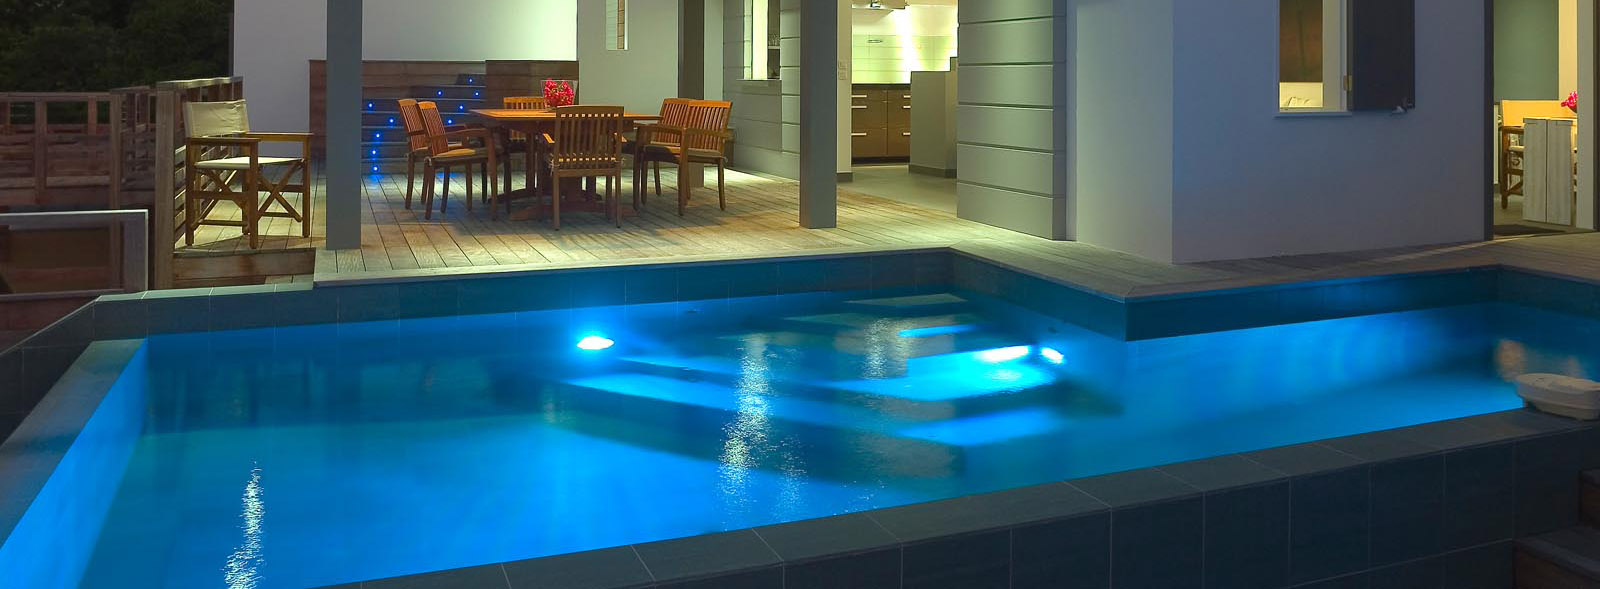 swimming pool led lights and lighting in atlantic seaboard and southern suburbs cape town